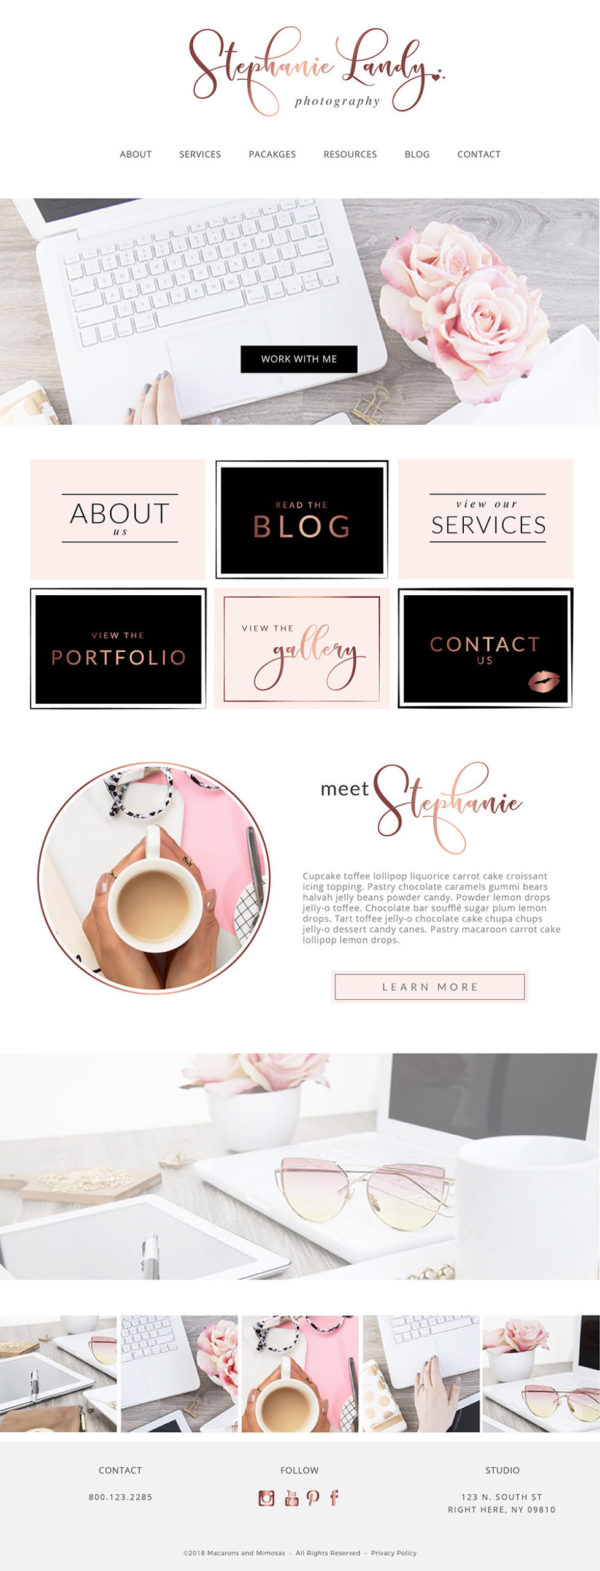 Web and Blog Template Kit, Ultimate Branding Kit, Premade website elements, Website Social Media Package